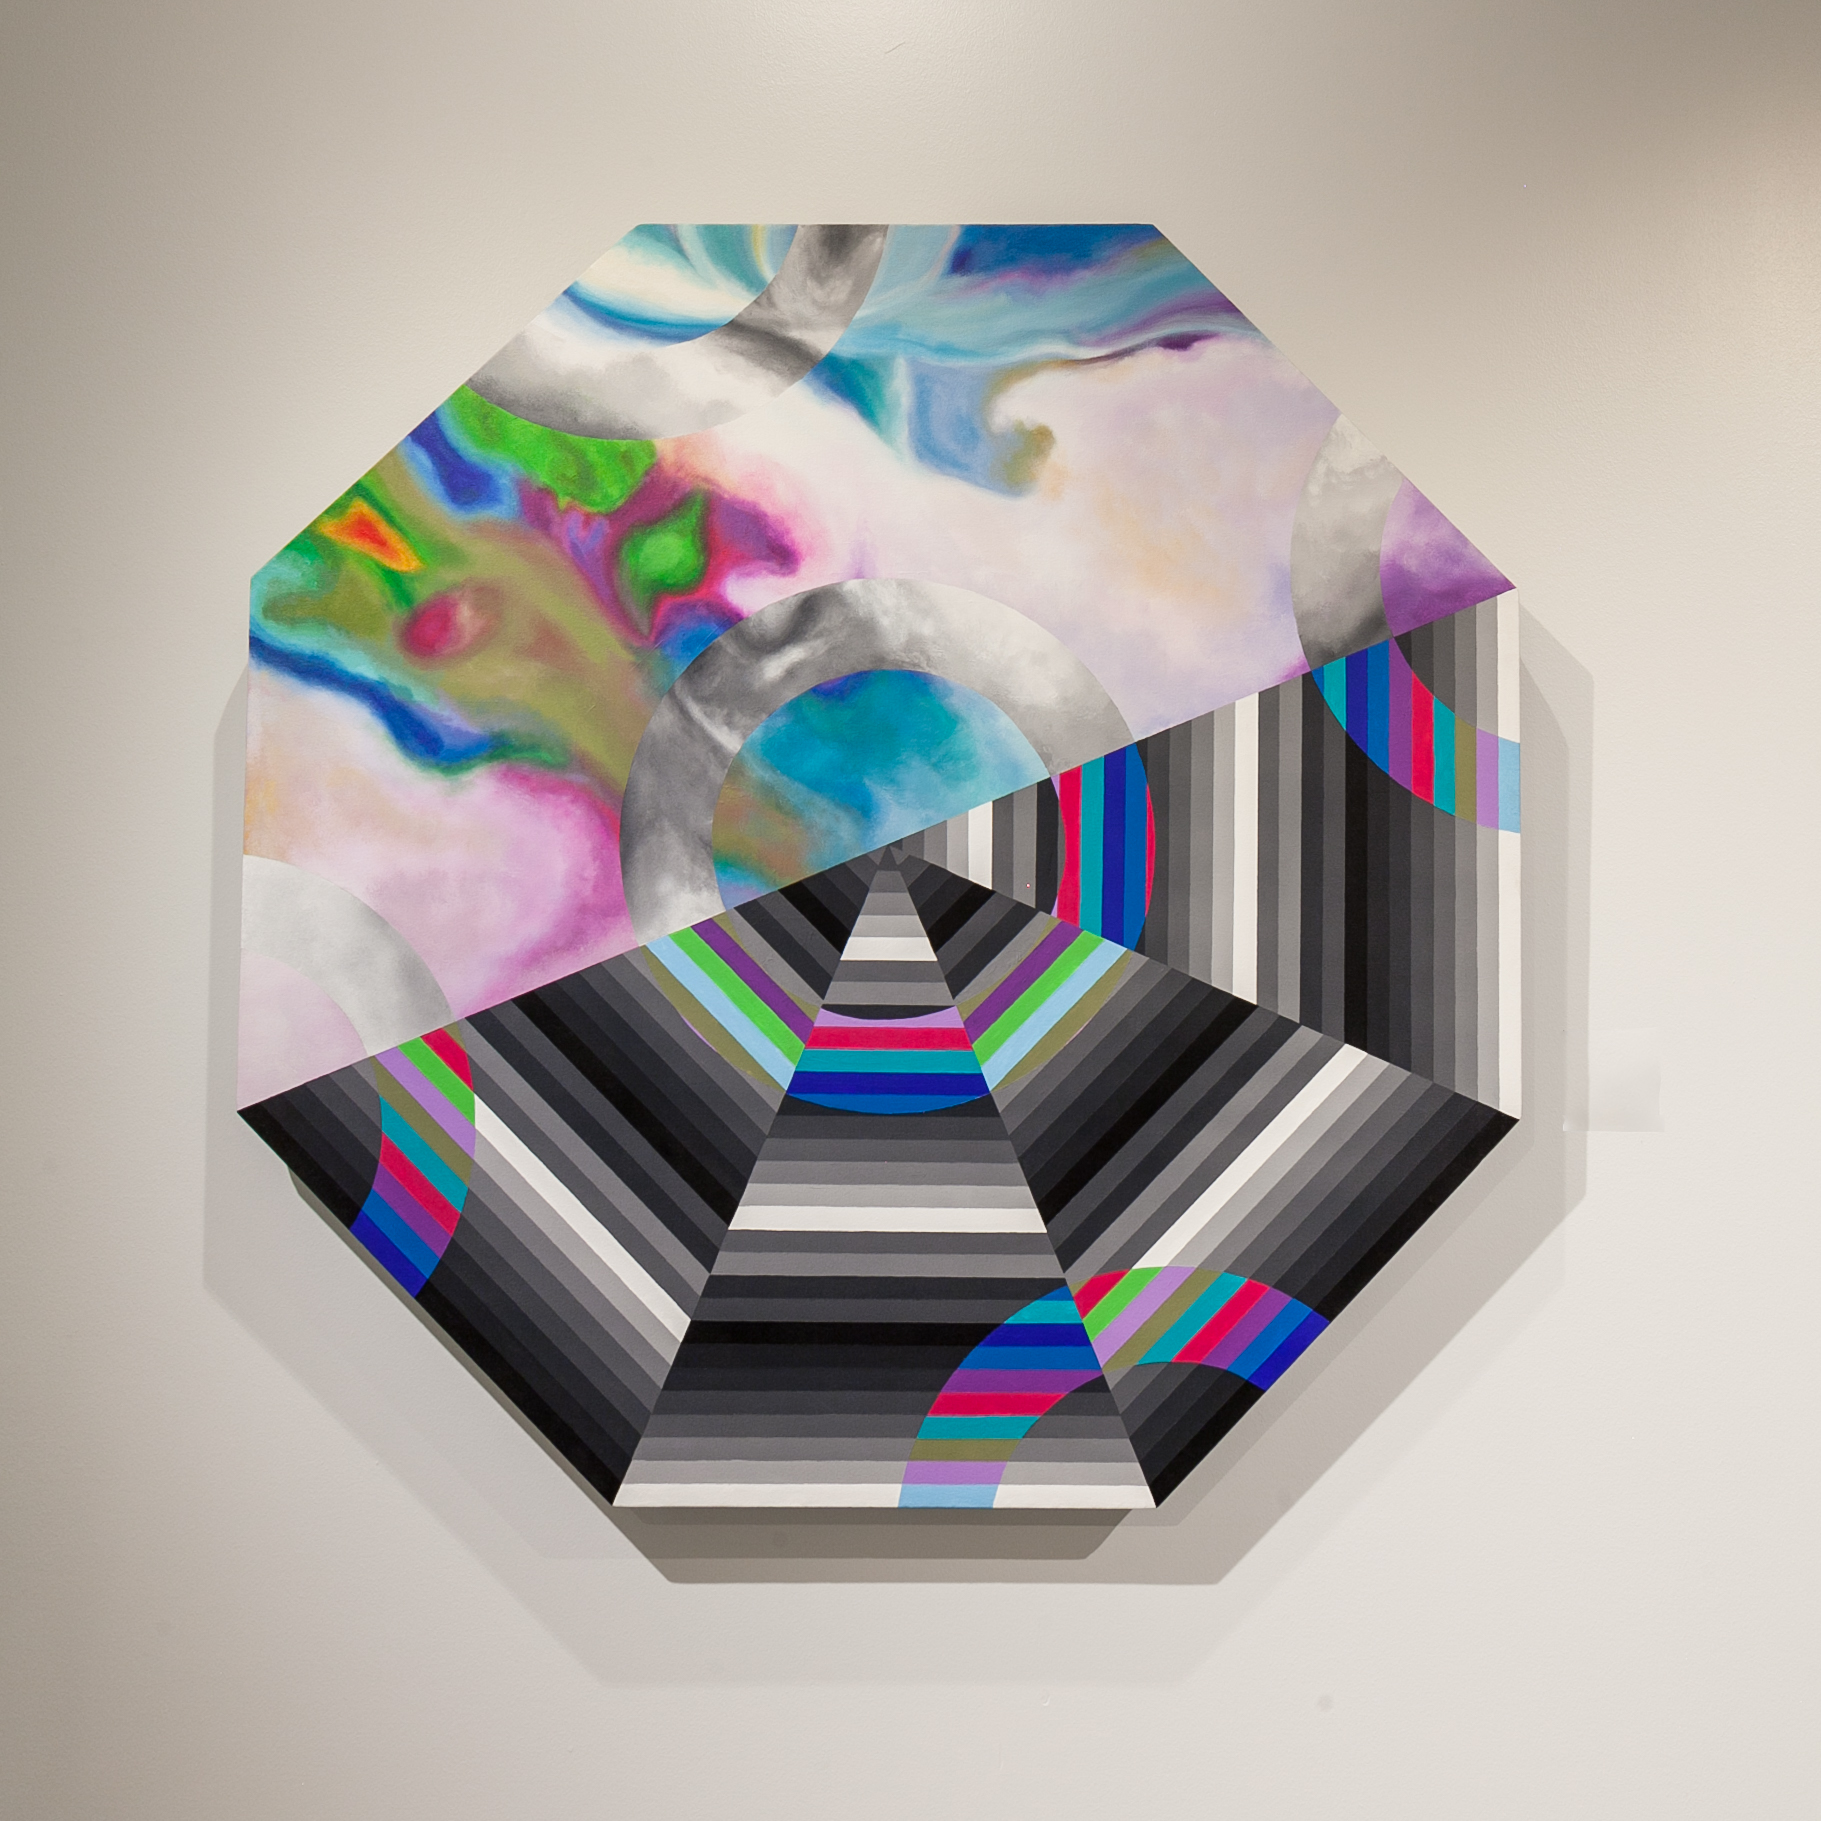 "Paige Ellens (Memphis, TN)   Octagonal Prism , 2019  Medium: Acrylic and ink on canvas  Dimensions: 56x56x3.5 inches  ""In the last year or two, I have become obsessed with line work and using repetitive patterns. I also love experimenting with colors that work to make some sort of optical illusion. In this piece, I worked with a zoomed in photograph of an iridescent bag as a reference for my background. Overlaid, I have line work that mimics the octagonal shape. It can be seen from afar because of its size, yet up close even more can be discovered.""  – Paige Ellens"